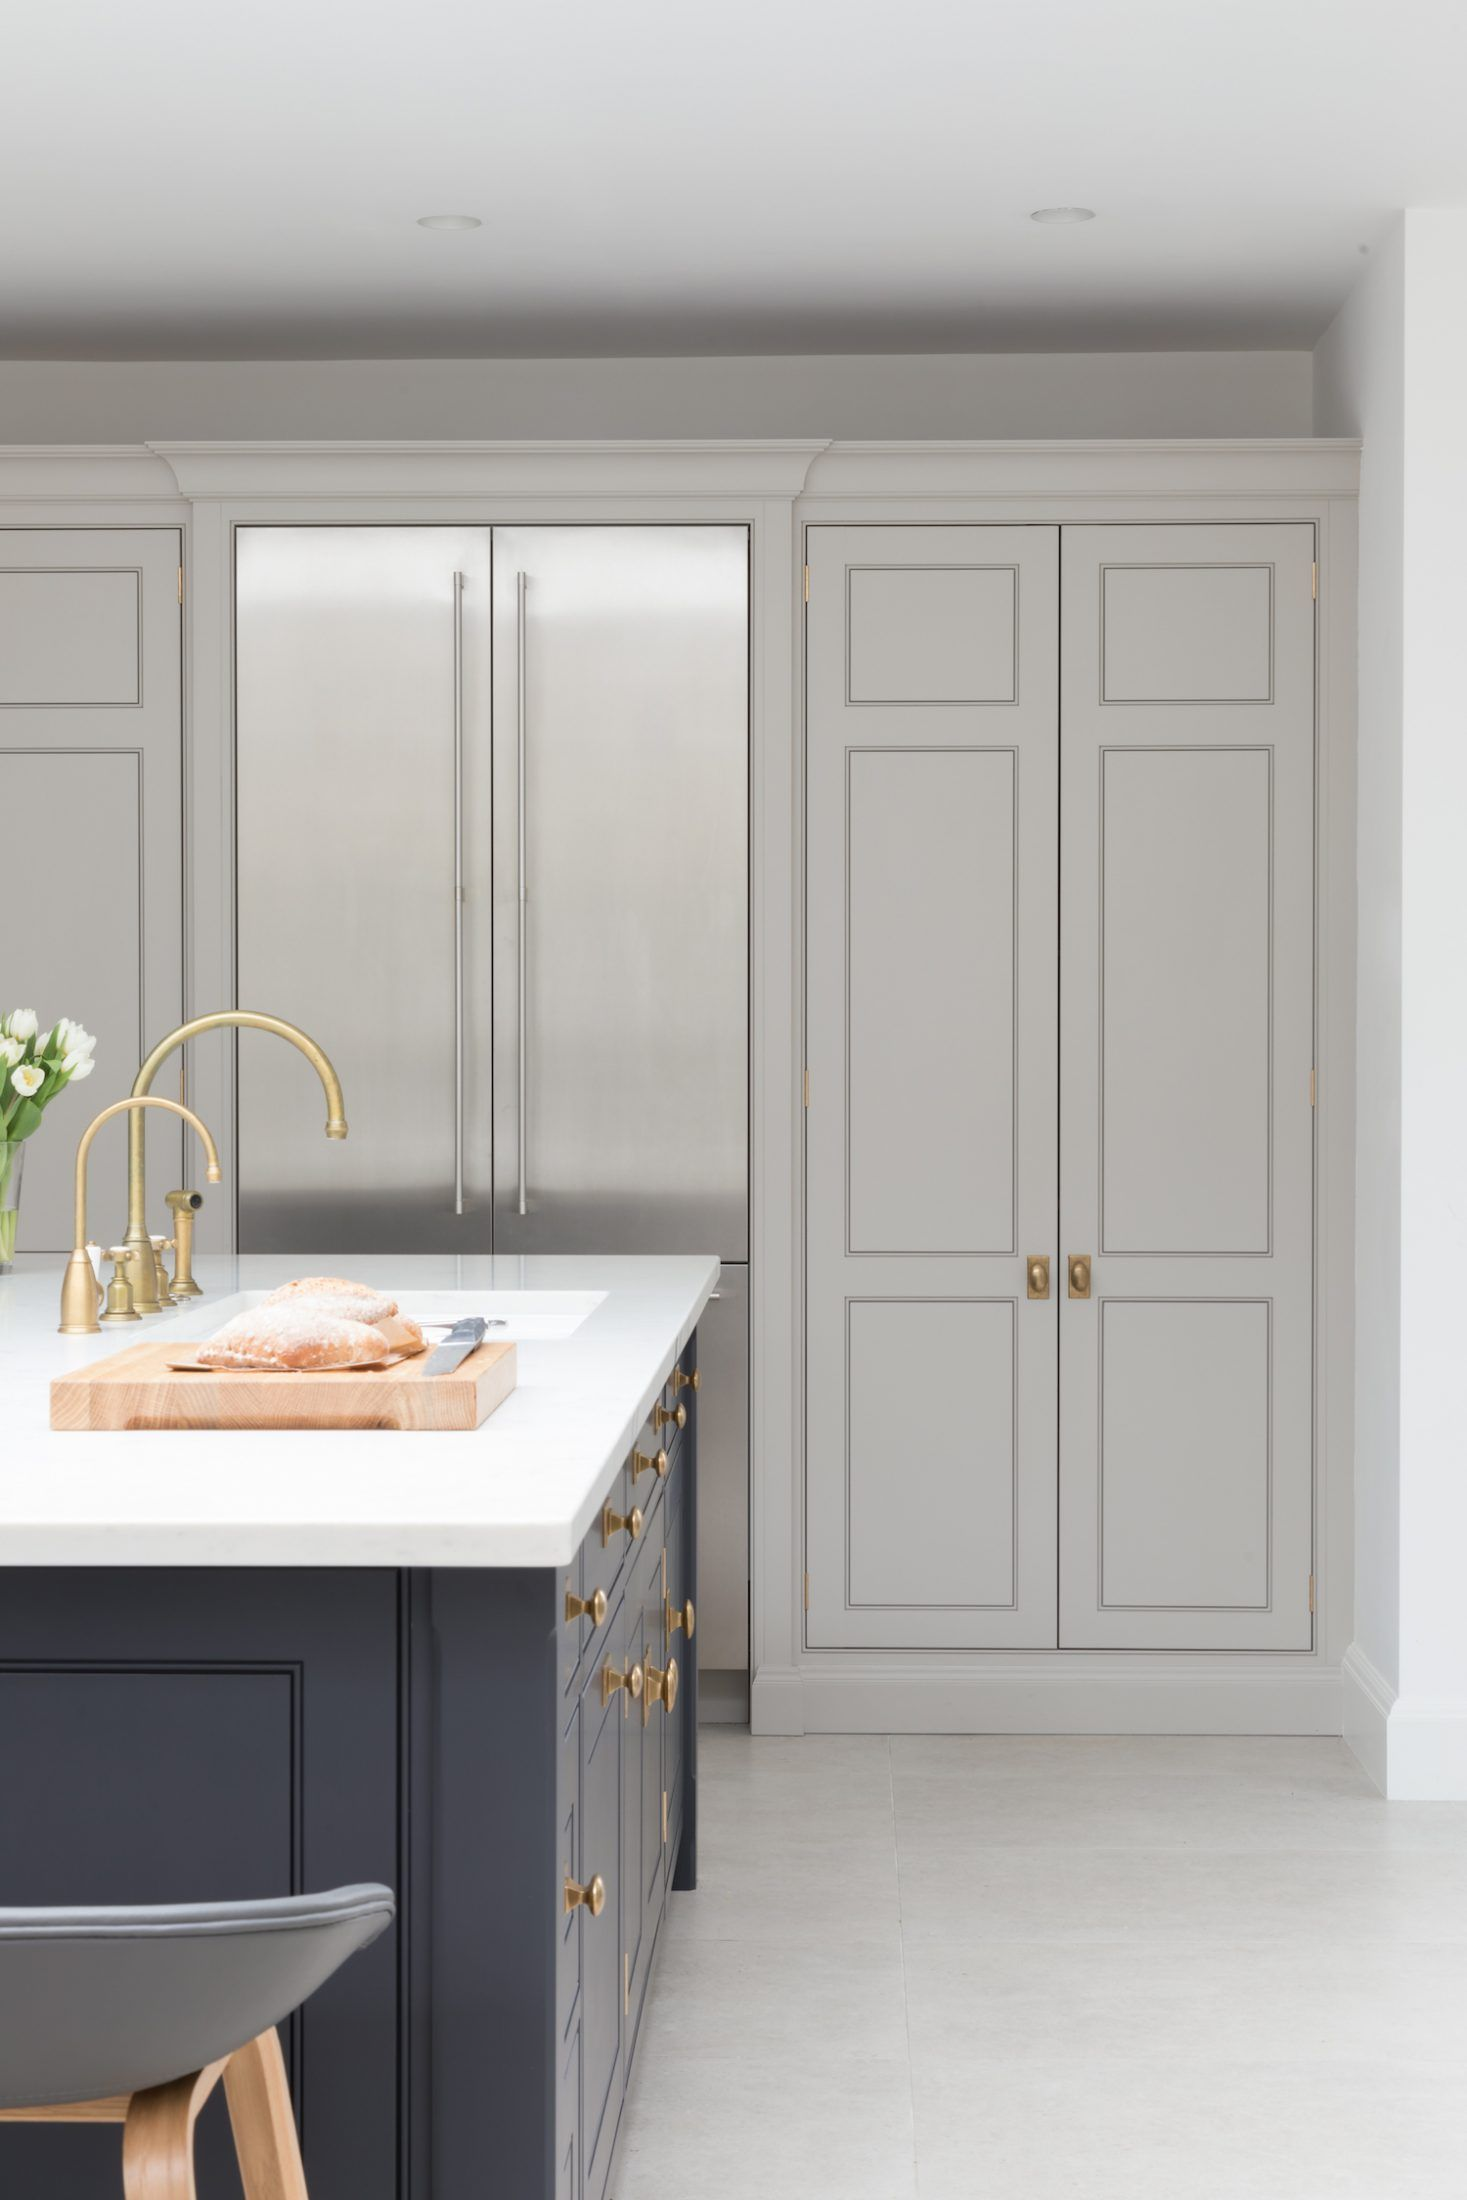 Light Gray Floor To Ceiling Cabinets With Built In Flush Fridge Navy Painted Kitchen Island Floor To Ceiling Cabinets Light Grey Kitchens Minimalist Kitchen